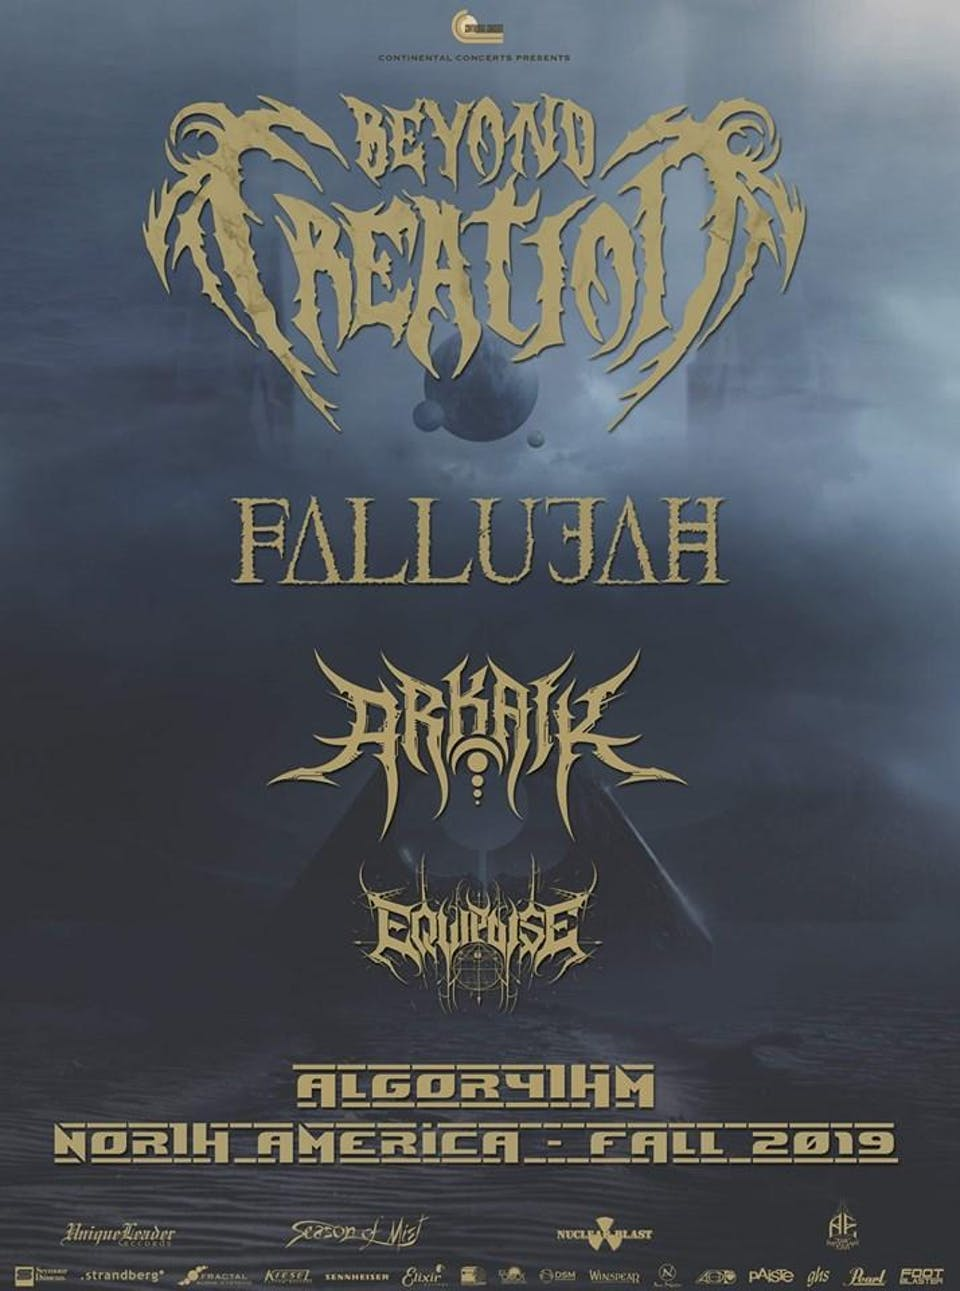 Beyond Creation, Fallujah, Arkaik, Equipose, The Last King